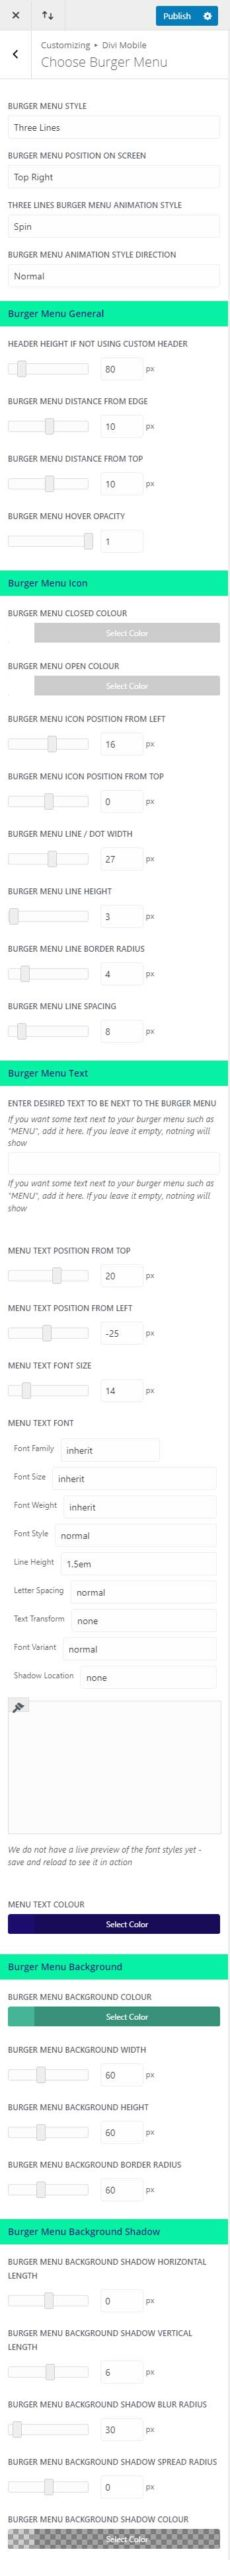 Mobile burger menu